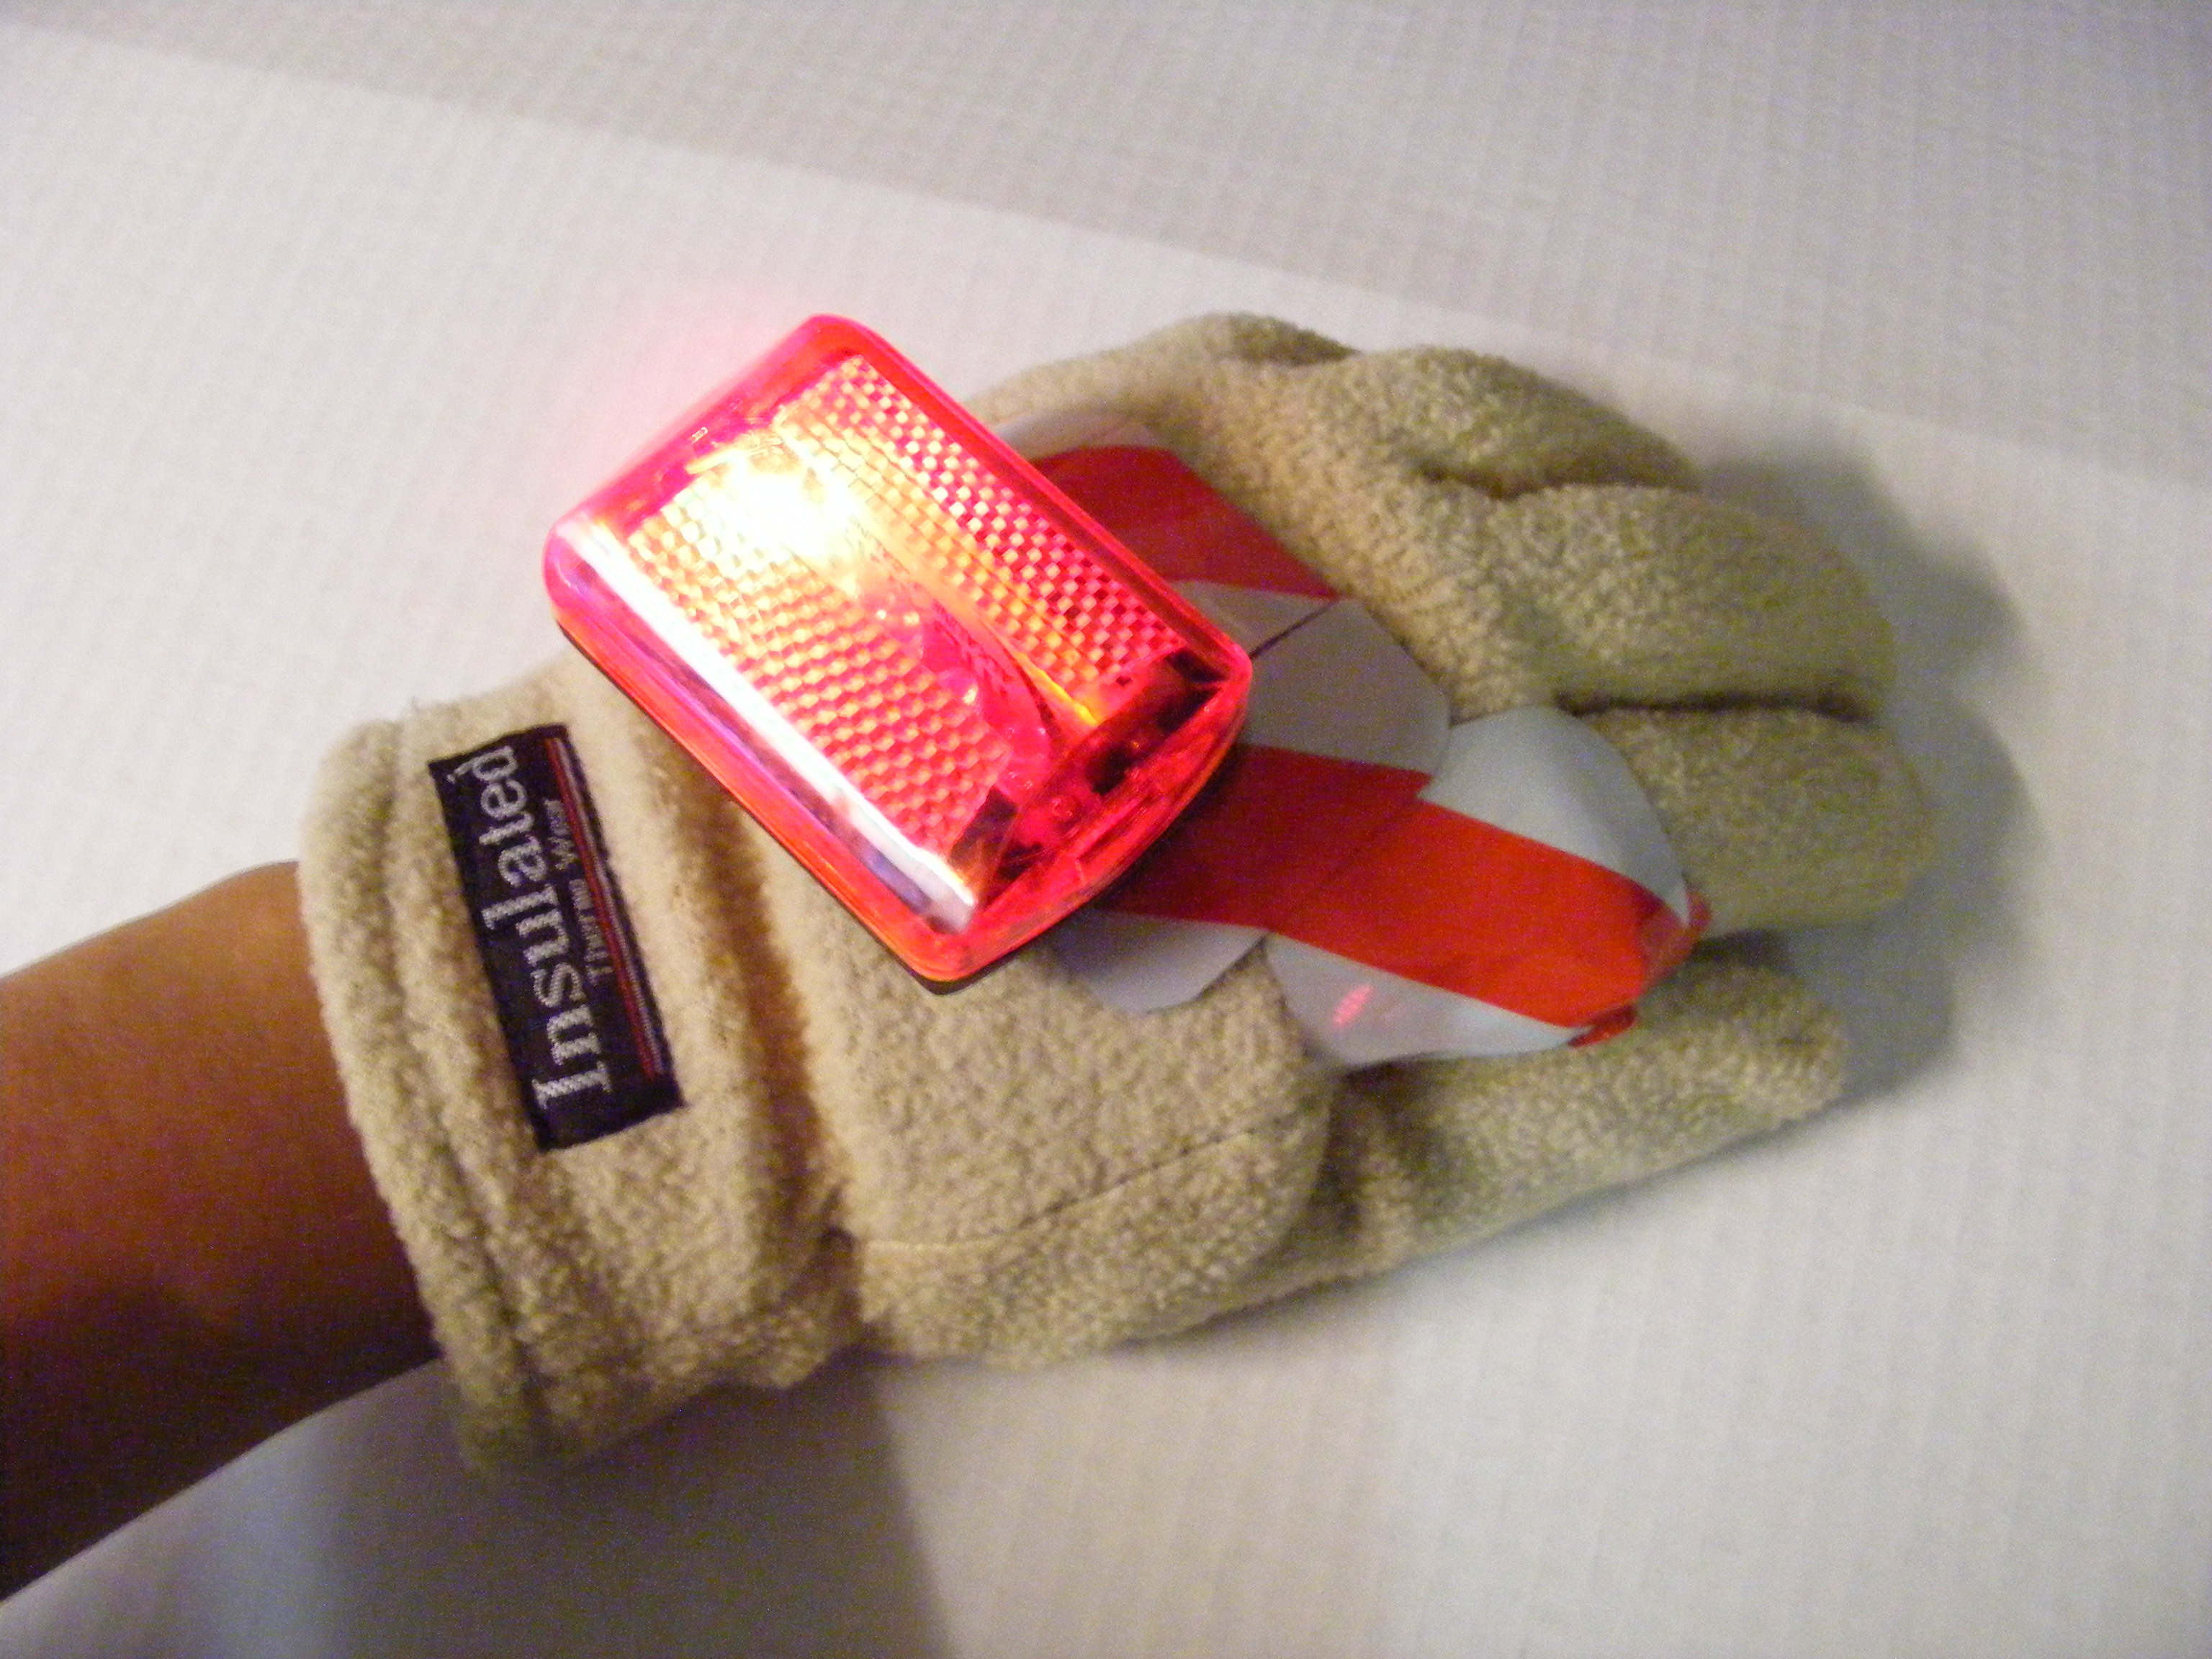 Adrian monk Disneytopian Blinking Hand of Righteousness (Turn Signal Glove)